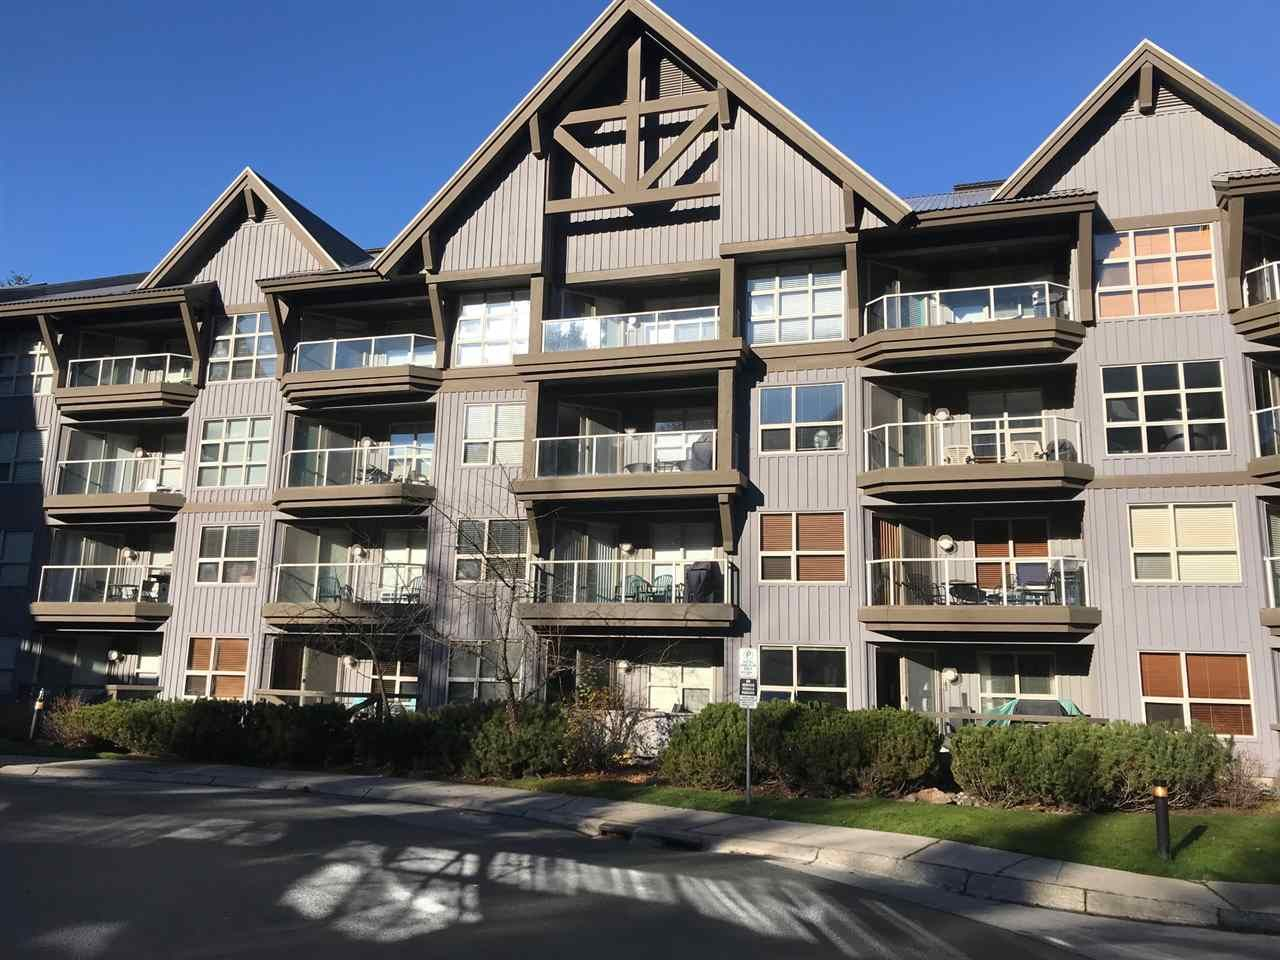 """Main Photo: 422 4800 SPEARHEAD Drive in Whistler: Benchlands Condo for sale in """"ASPENS"""" : MLS®# R2556566"""